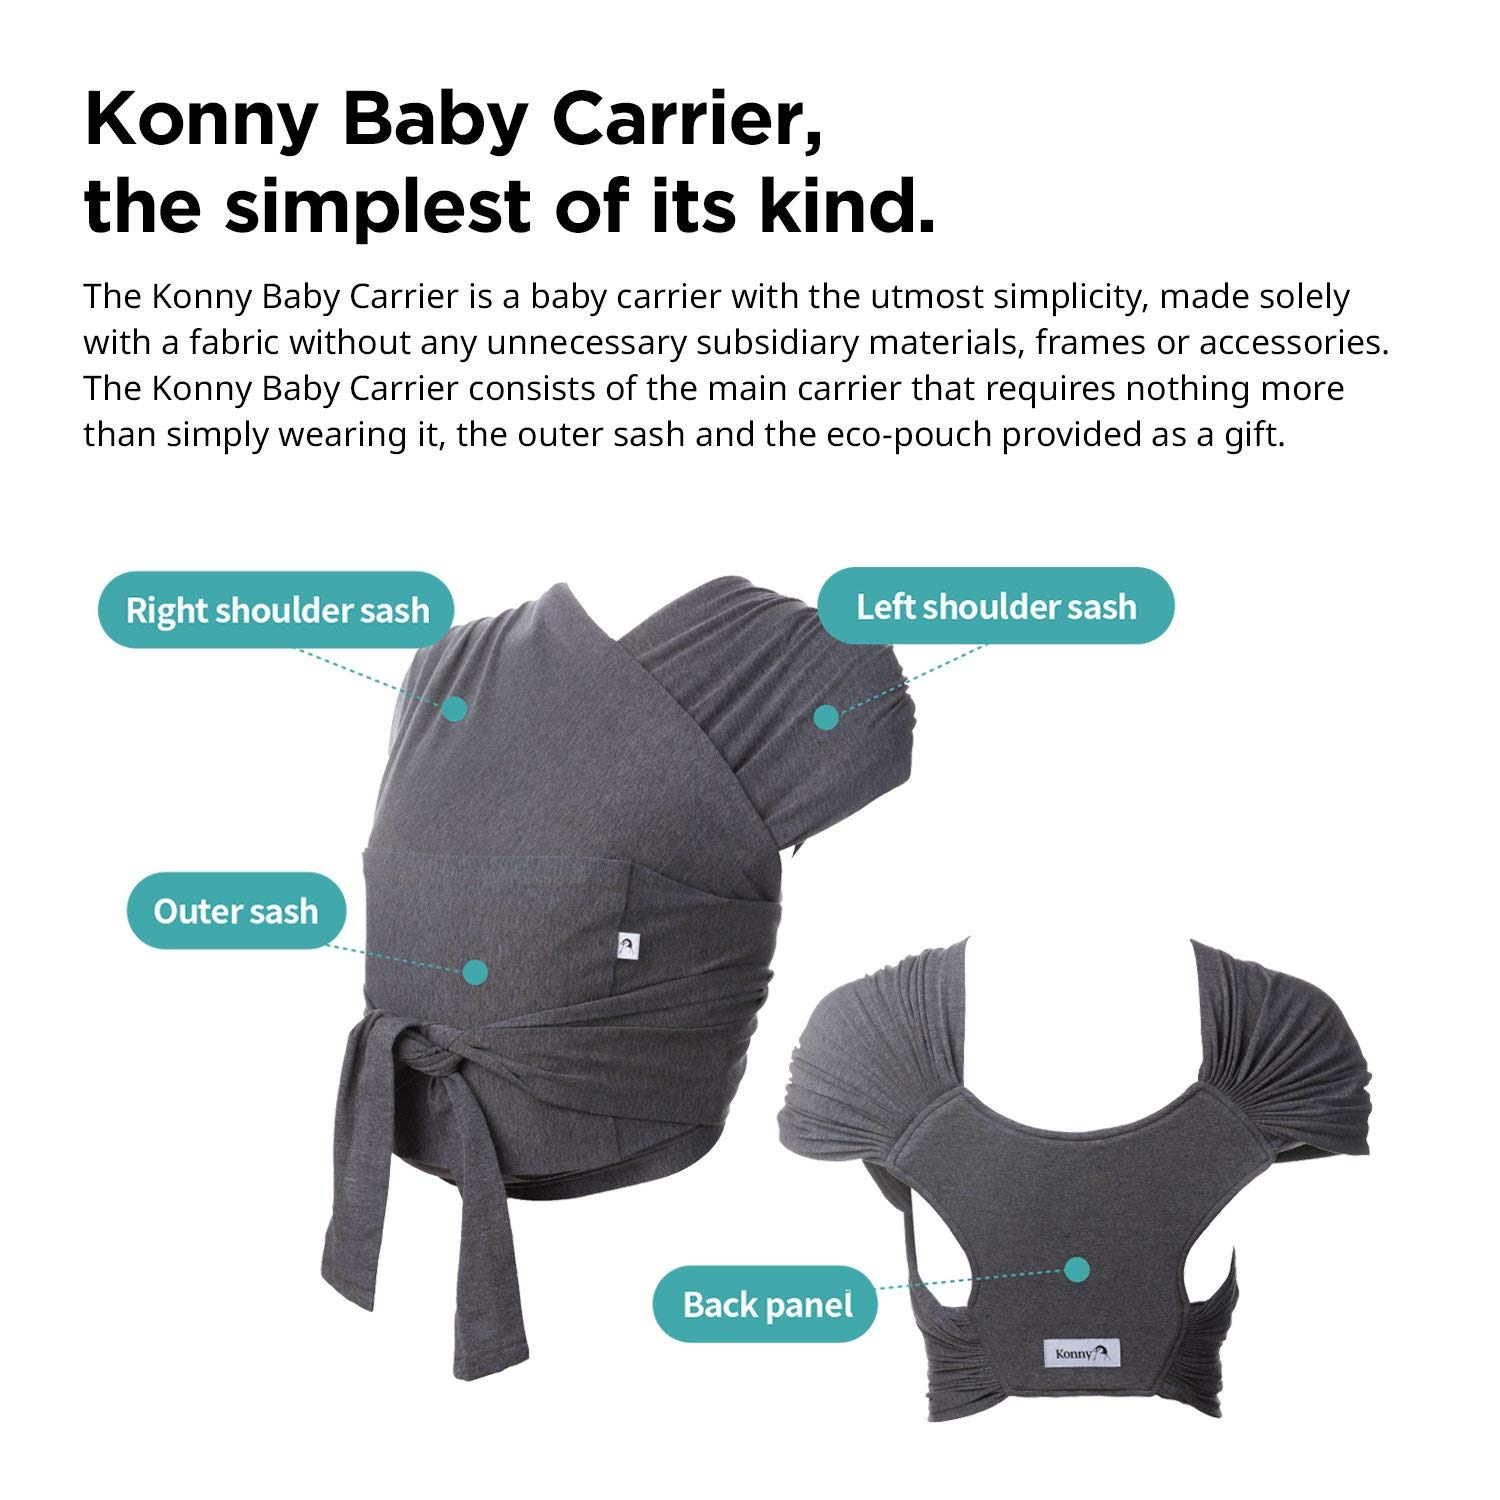 Charcoal, 2XS Konny Baby Carrier Summer Ultra-Lightweight Sensible Sleep Solution Cool and Breathable Fabric Infants to 44 lbs Toddlers Hassle-Free Baby Wrap Sling Newborns